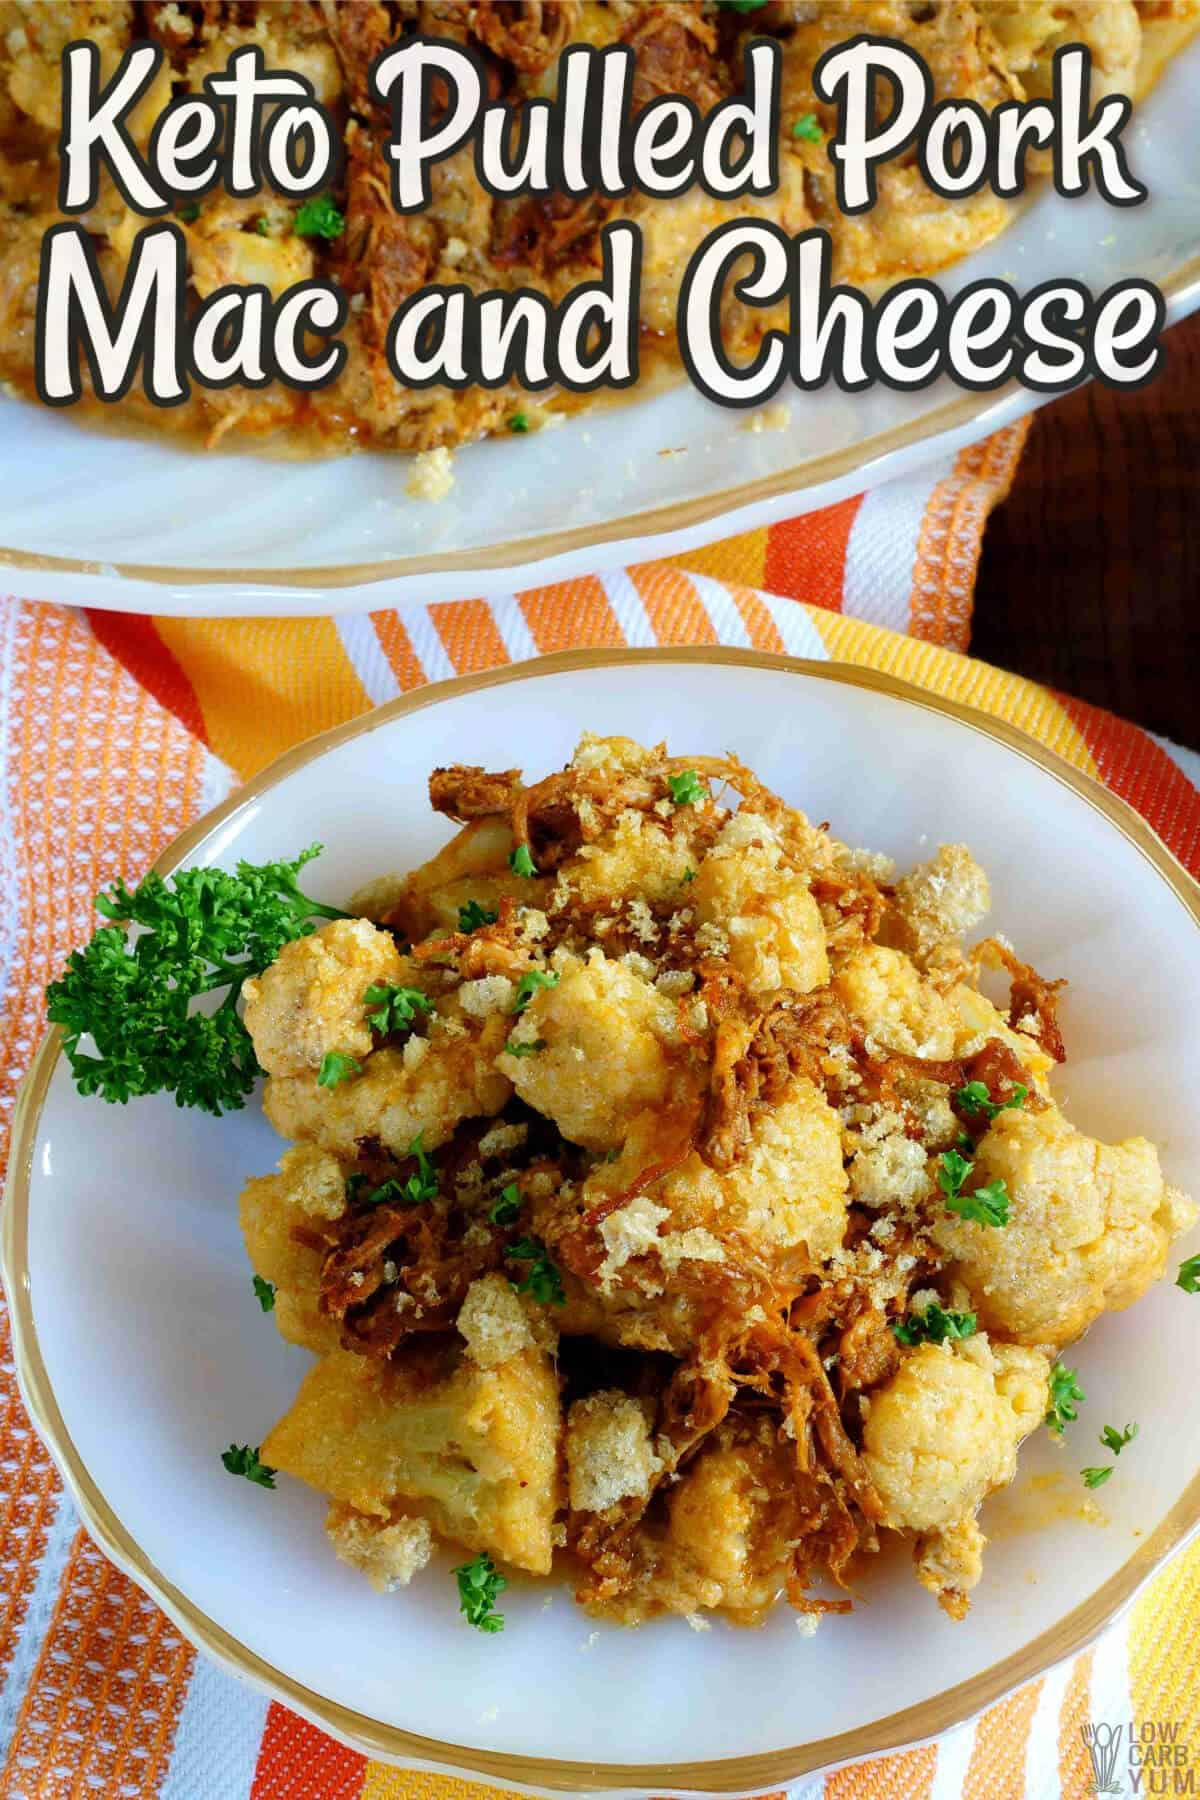 keto pulled pork mac and cheese cover image